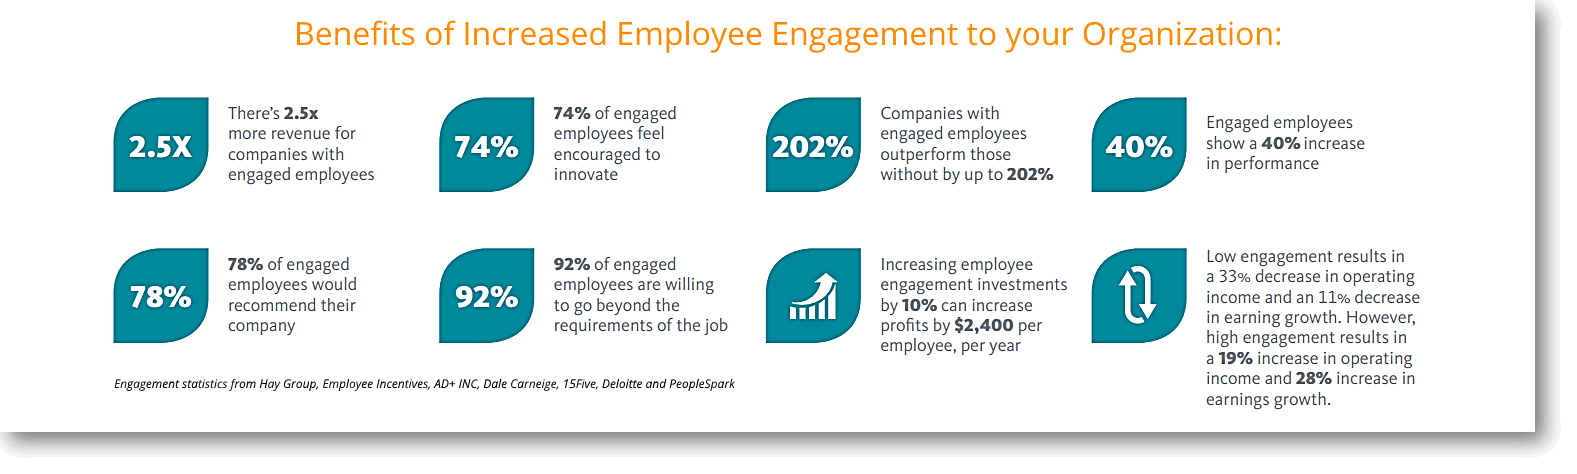 innovative employee engagement practices benefits